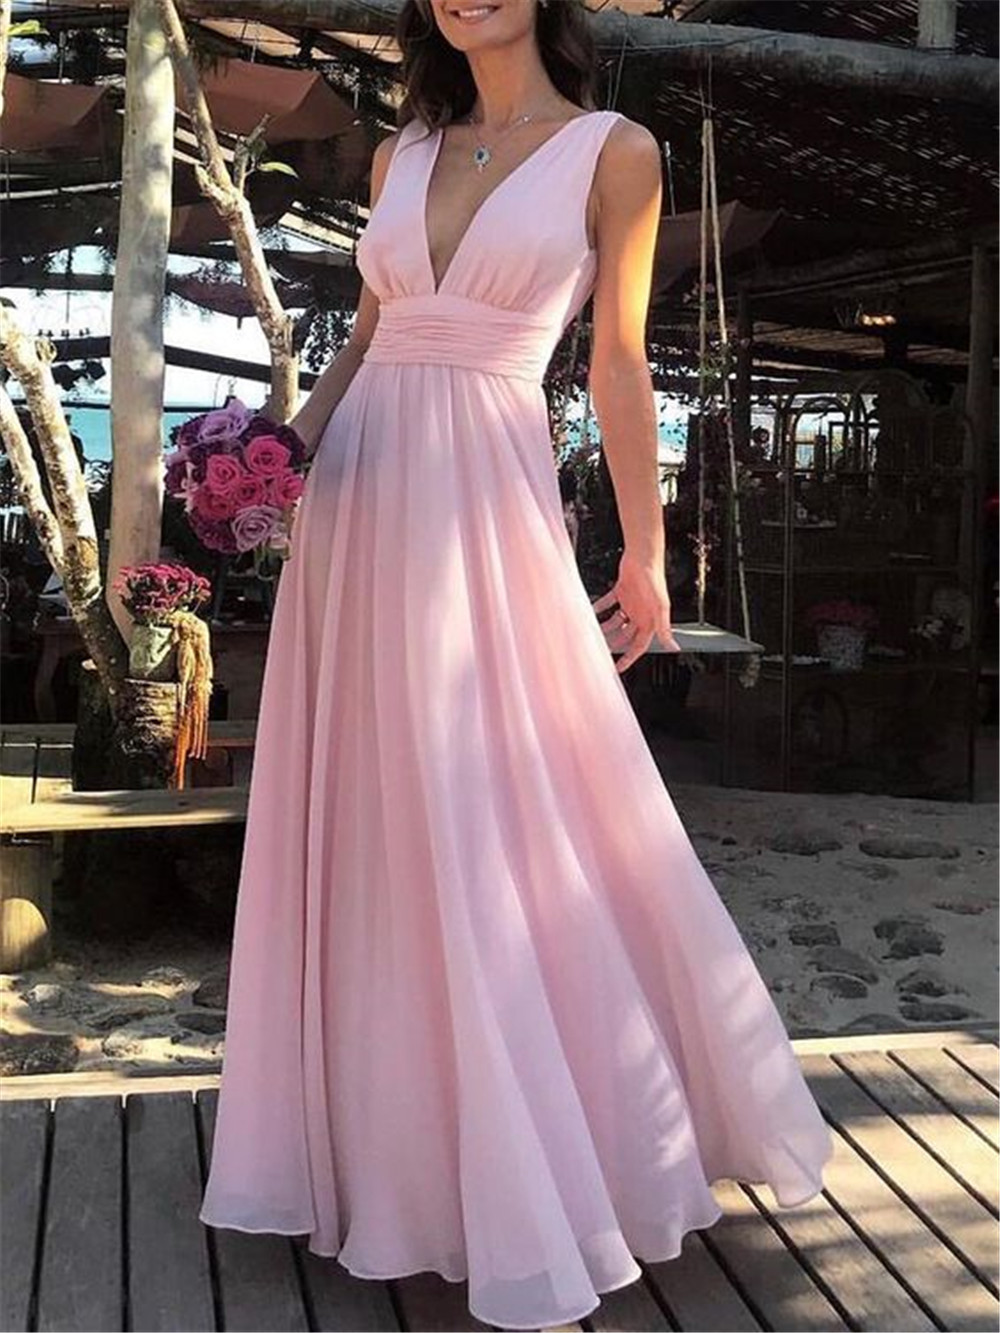 2019 Elegant Pink Chiffon   Bridesmaid     Dresses   V Neck A Line Floor Length Long Formal Occasion   Dress   Cheap Wedding Party Gowns